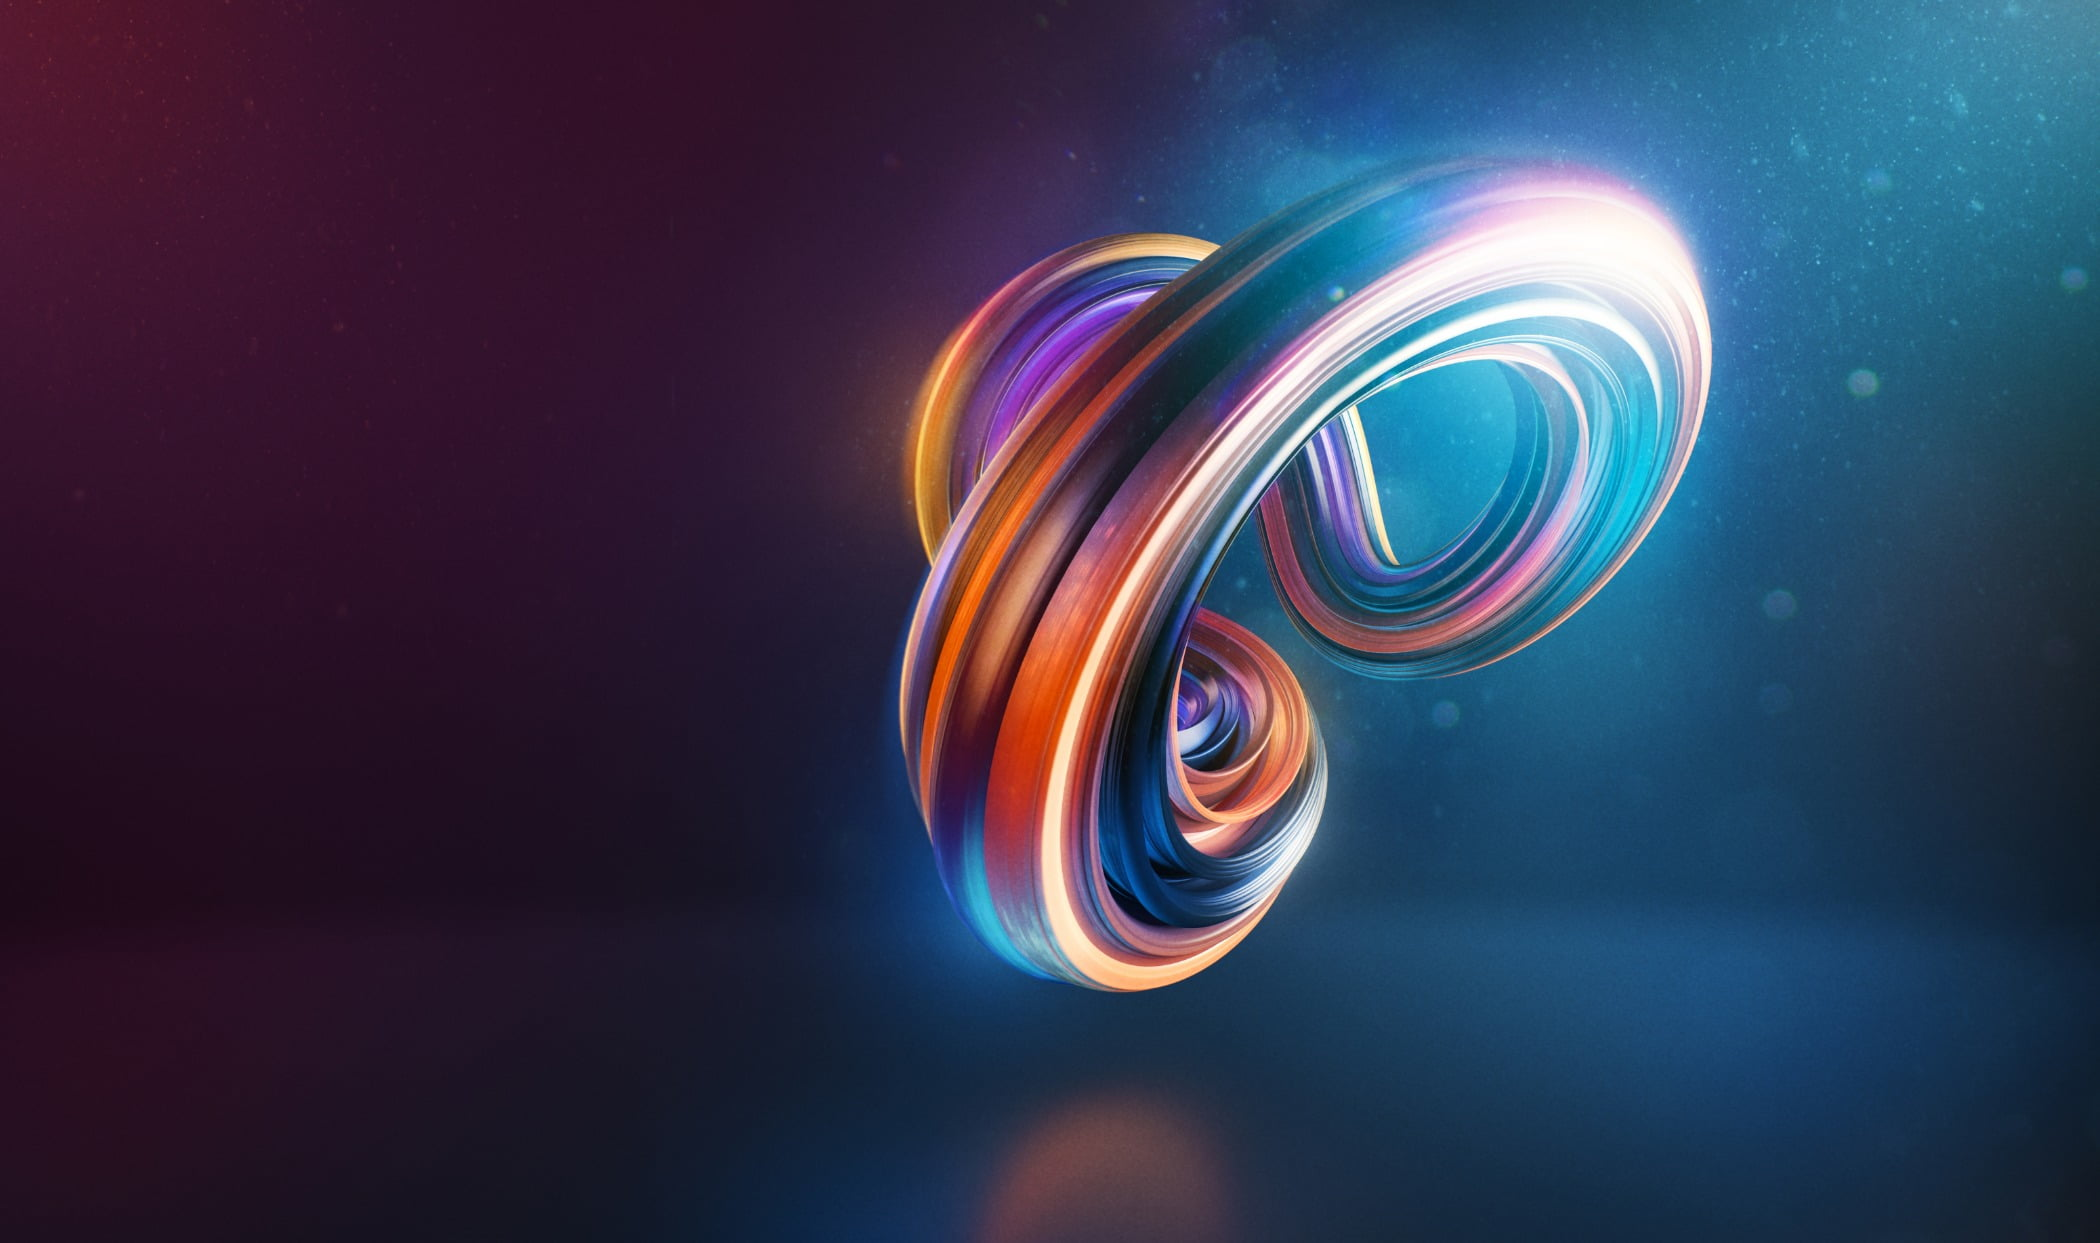 Abstract curved and twisted shape 3d render